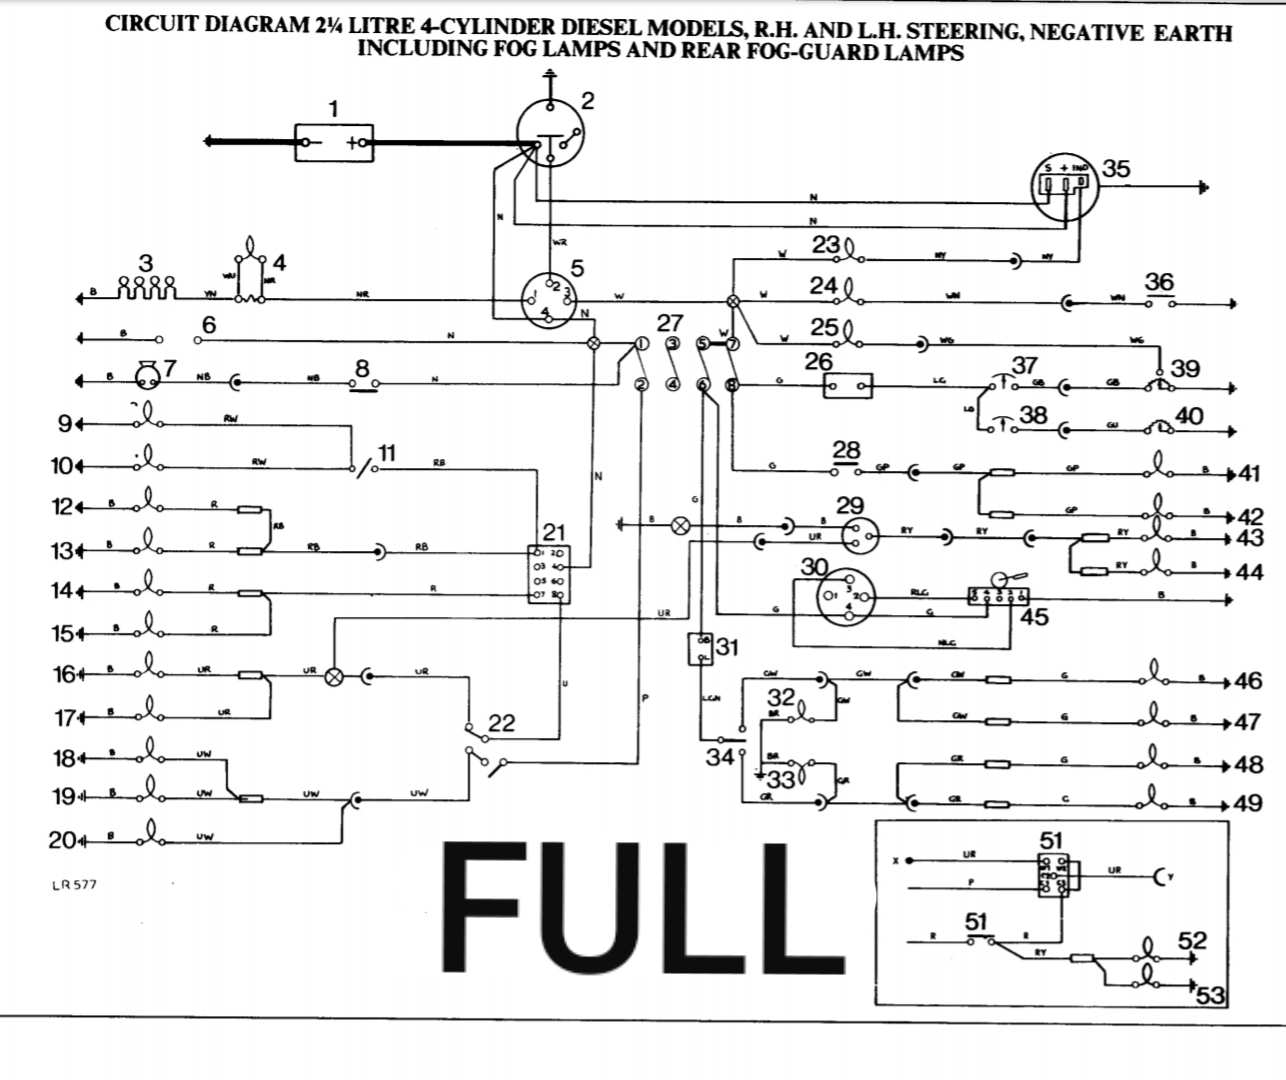 Very Late 1985 Series 3 Swb 2 25 Diesel Wiring Diagram Required